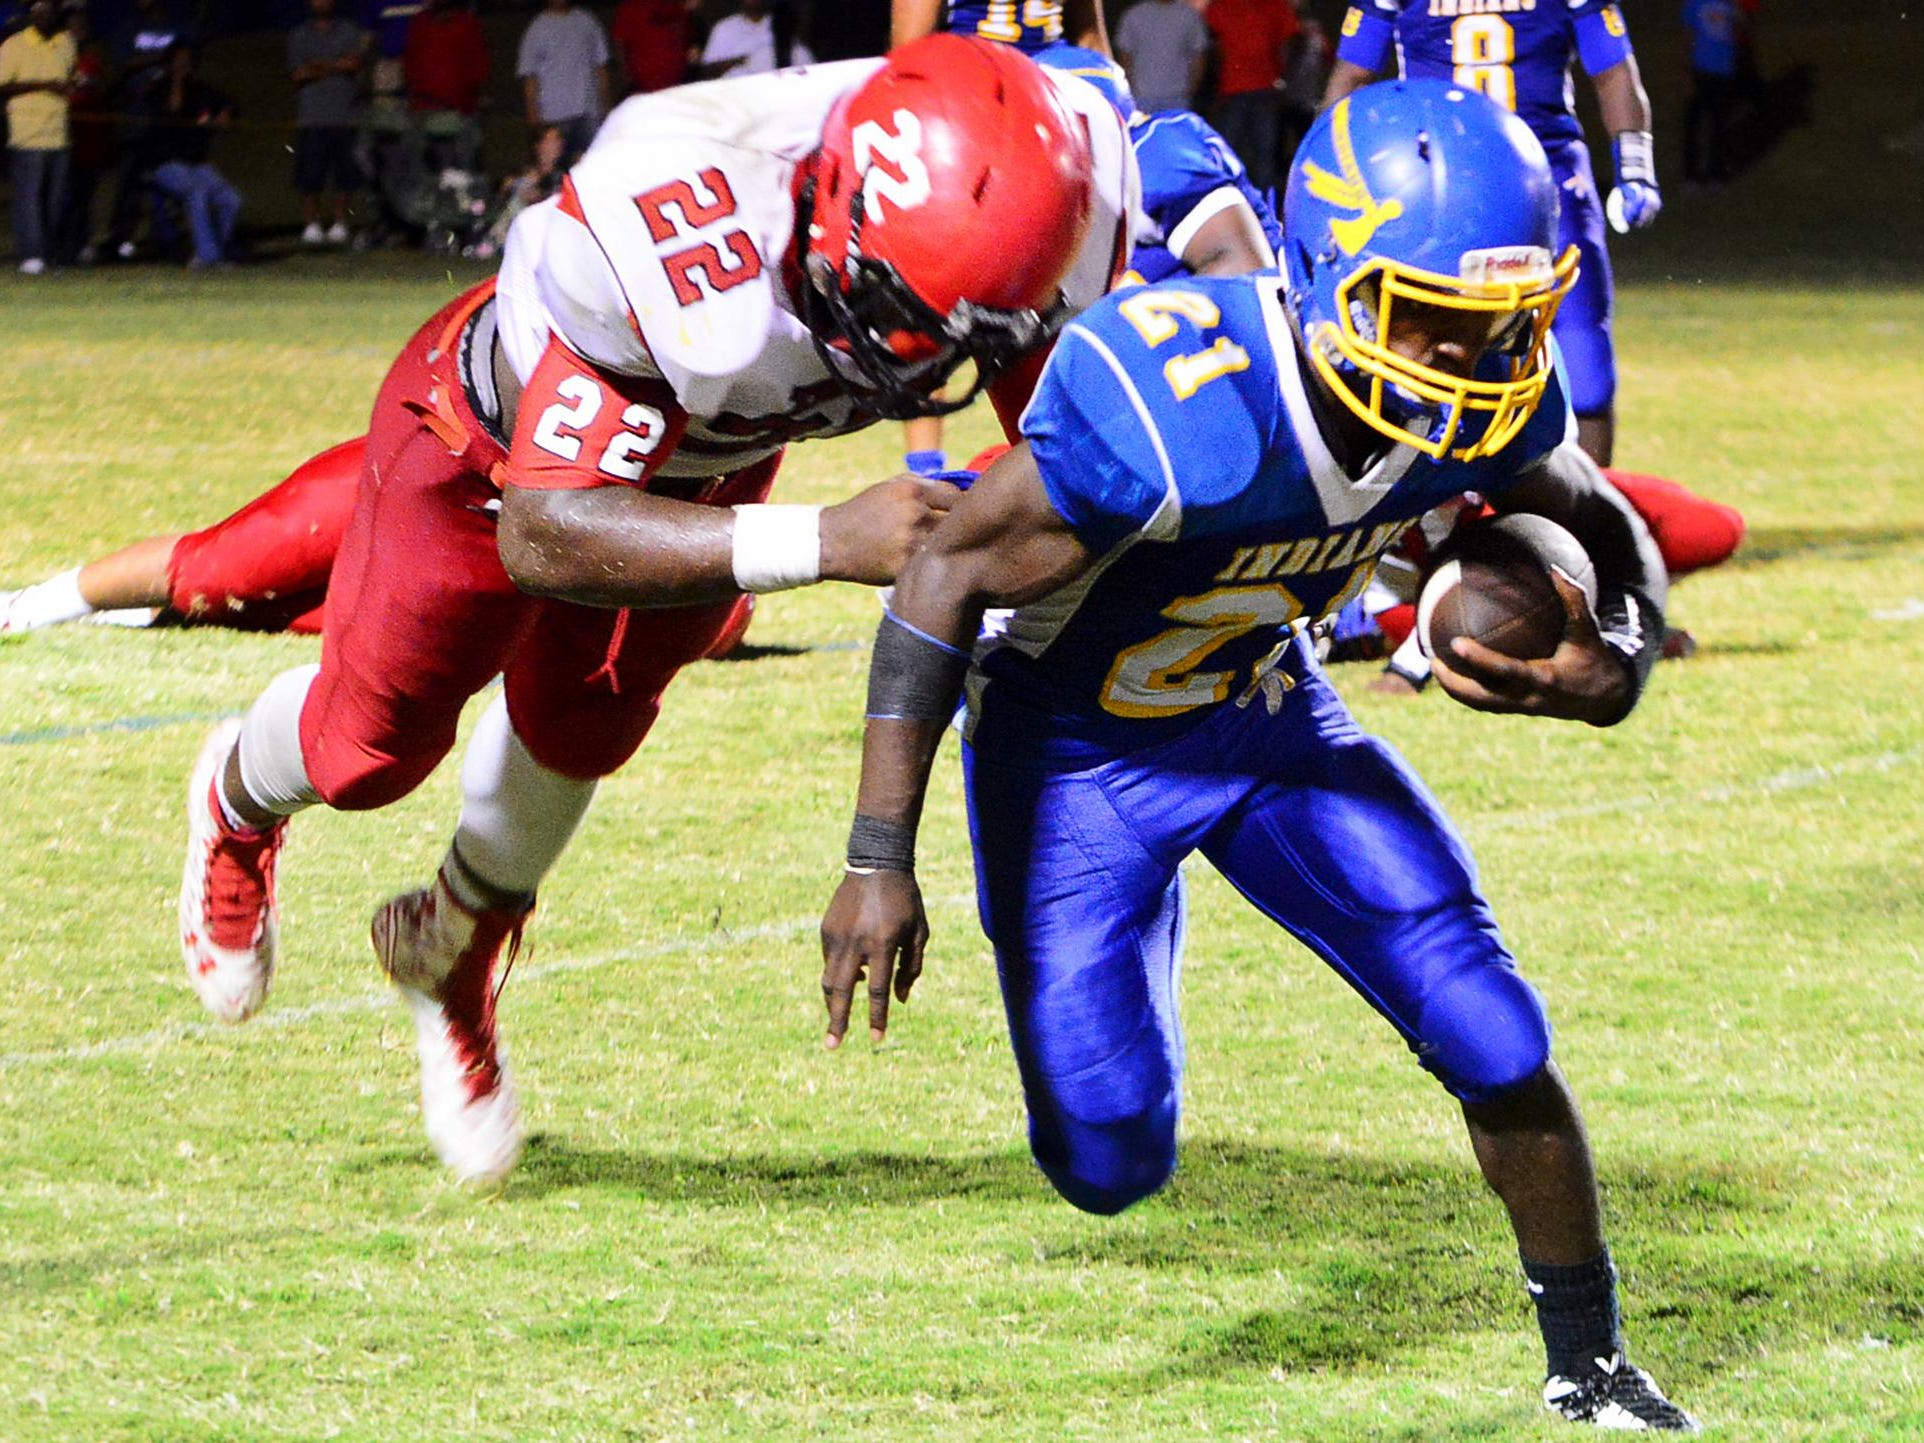 Lexington's Tariqious Tisdale grabs North Side's Darius Brown for a tackle, Friday at North Side.